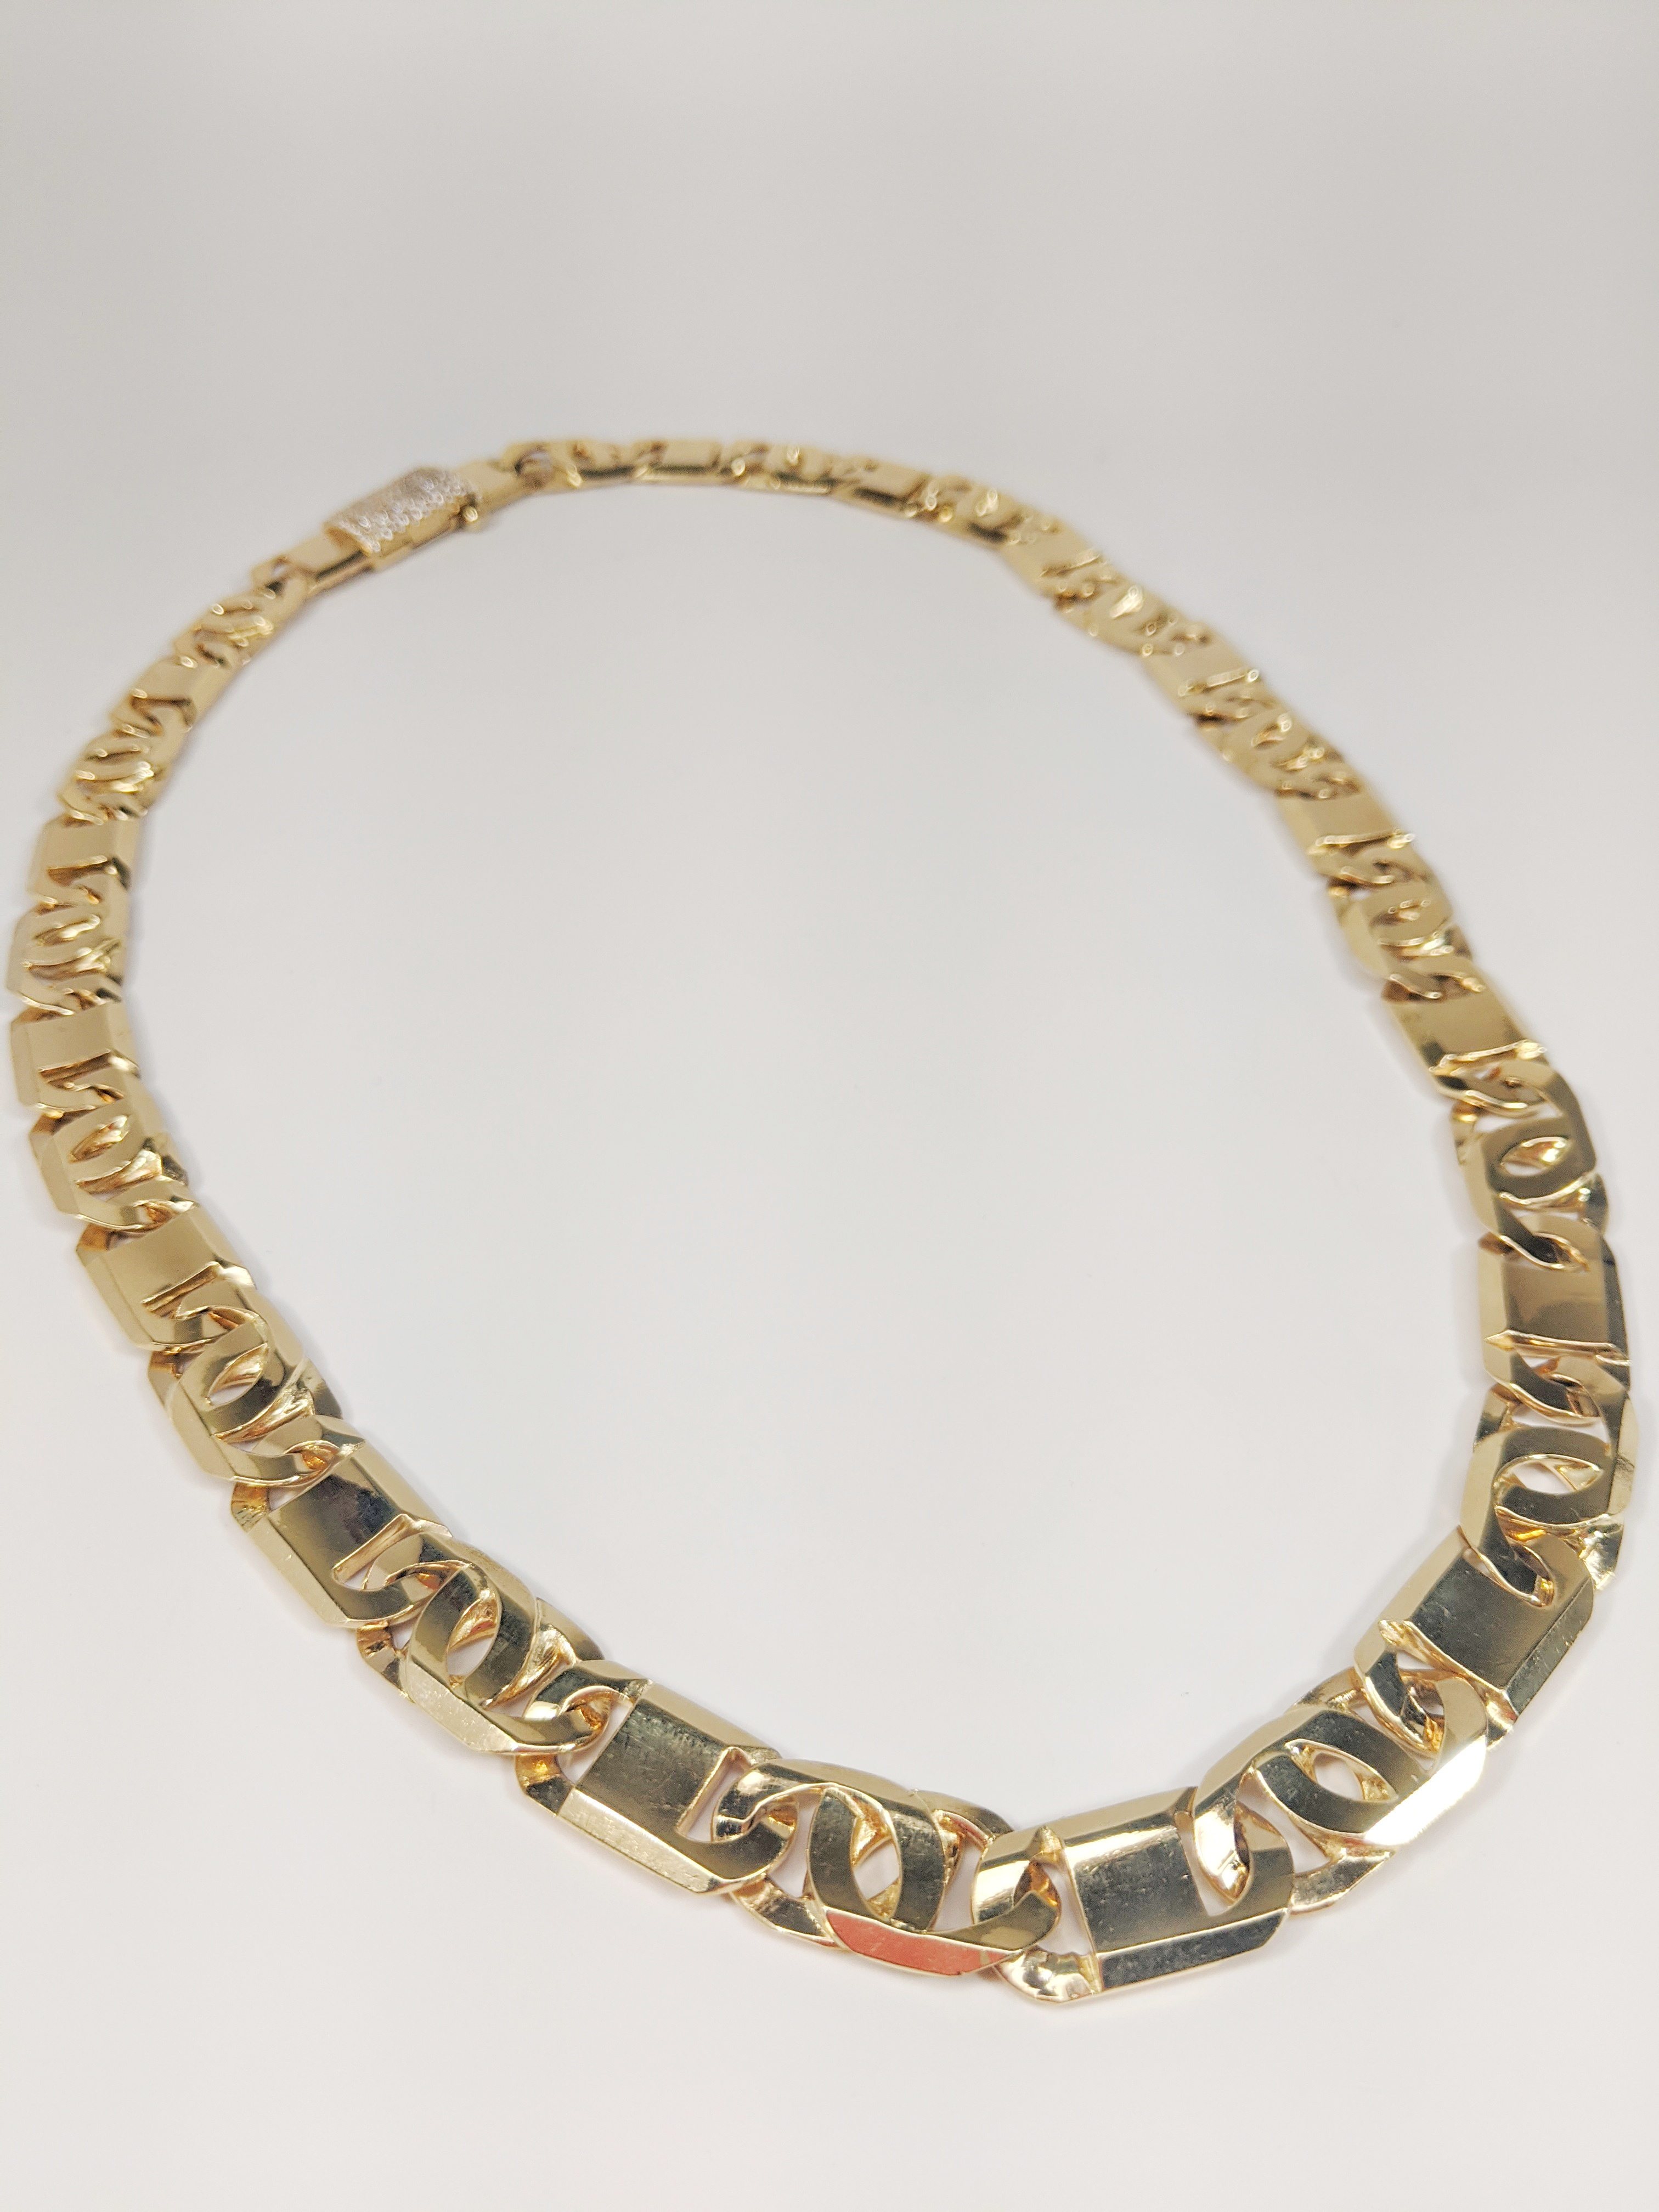 14KT Yellow Gold Solid Heavy Fancy Tiger Eye Link Chain, Hand Made Italian Chain 12MM wide, VVS Pave Diamond Lock, Cuban Box Lock, Whole Chain